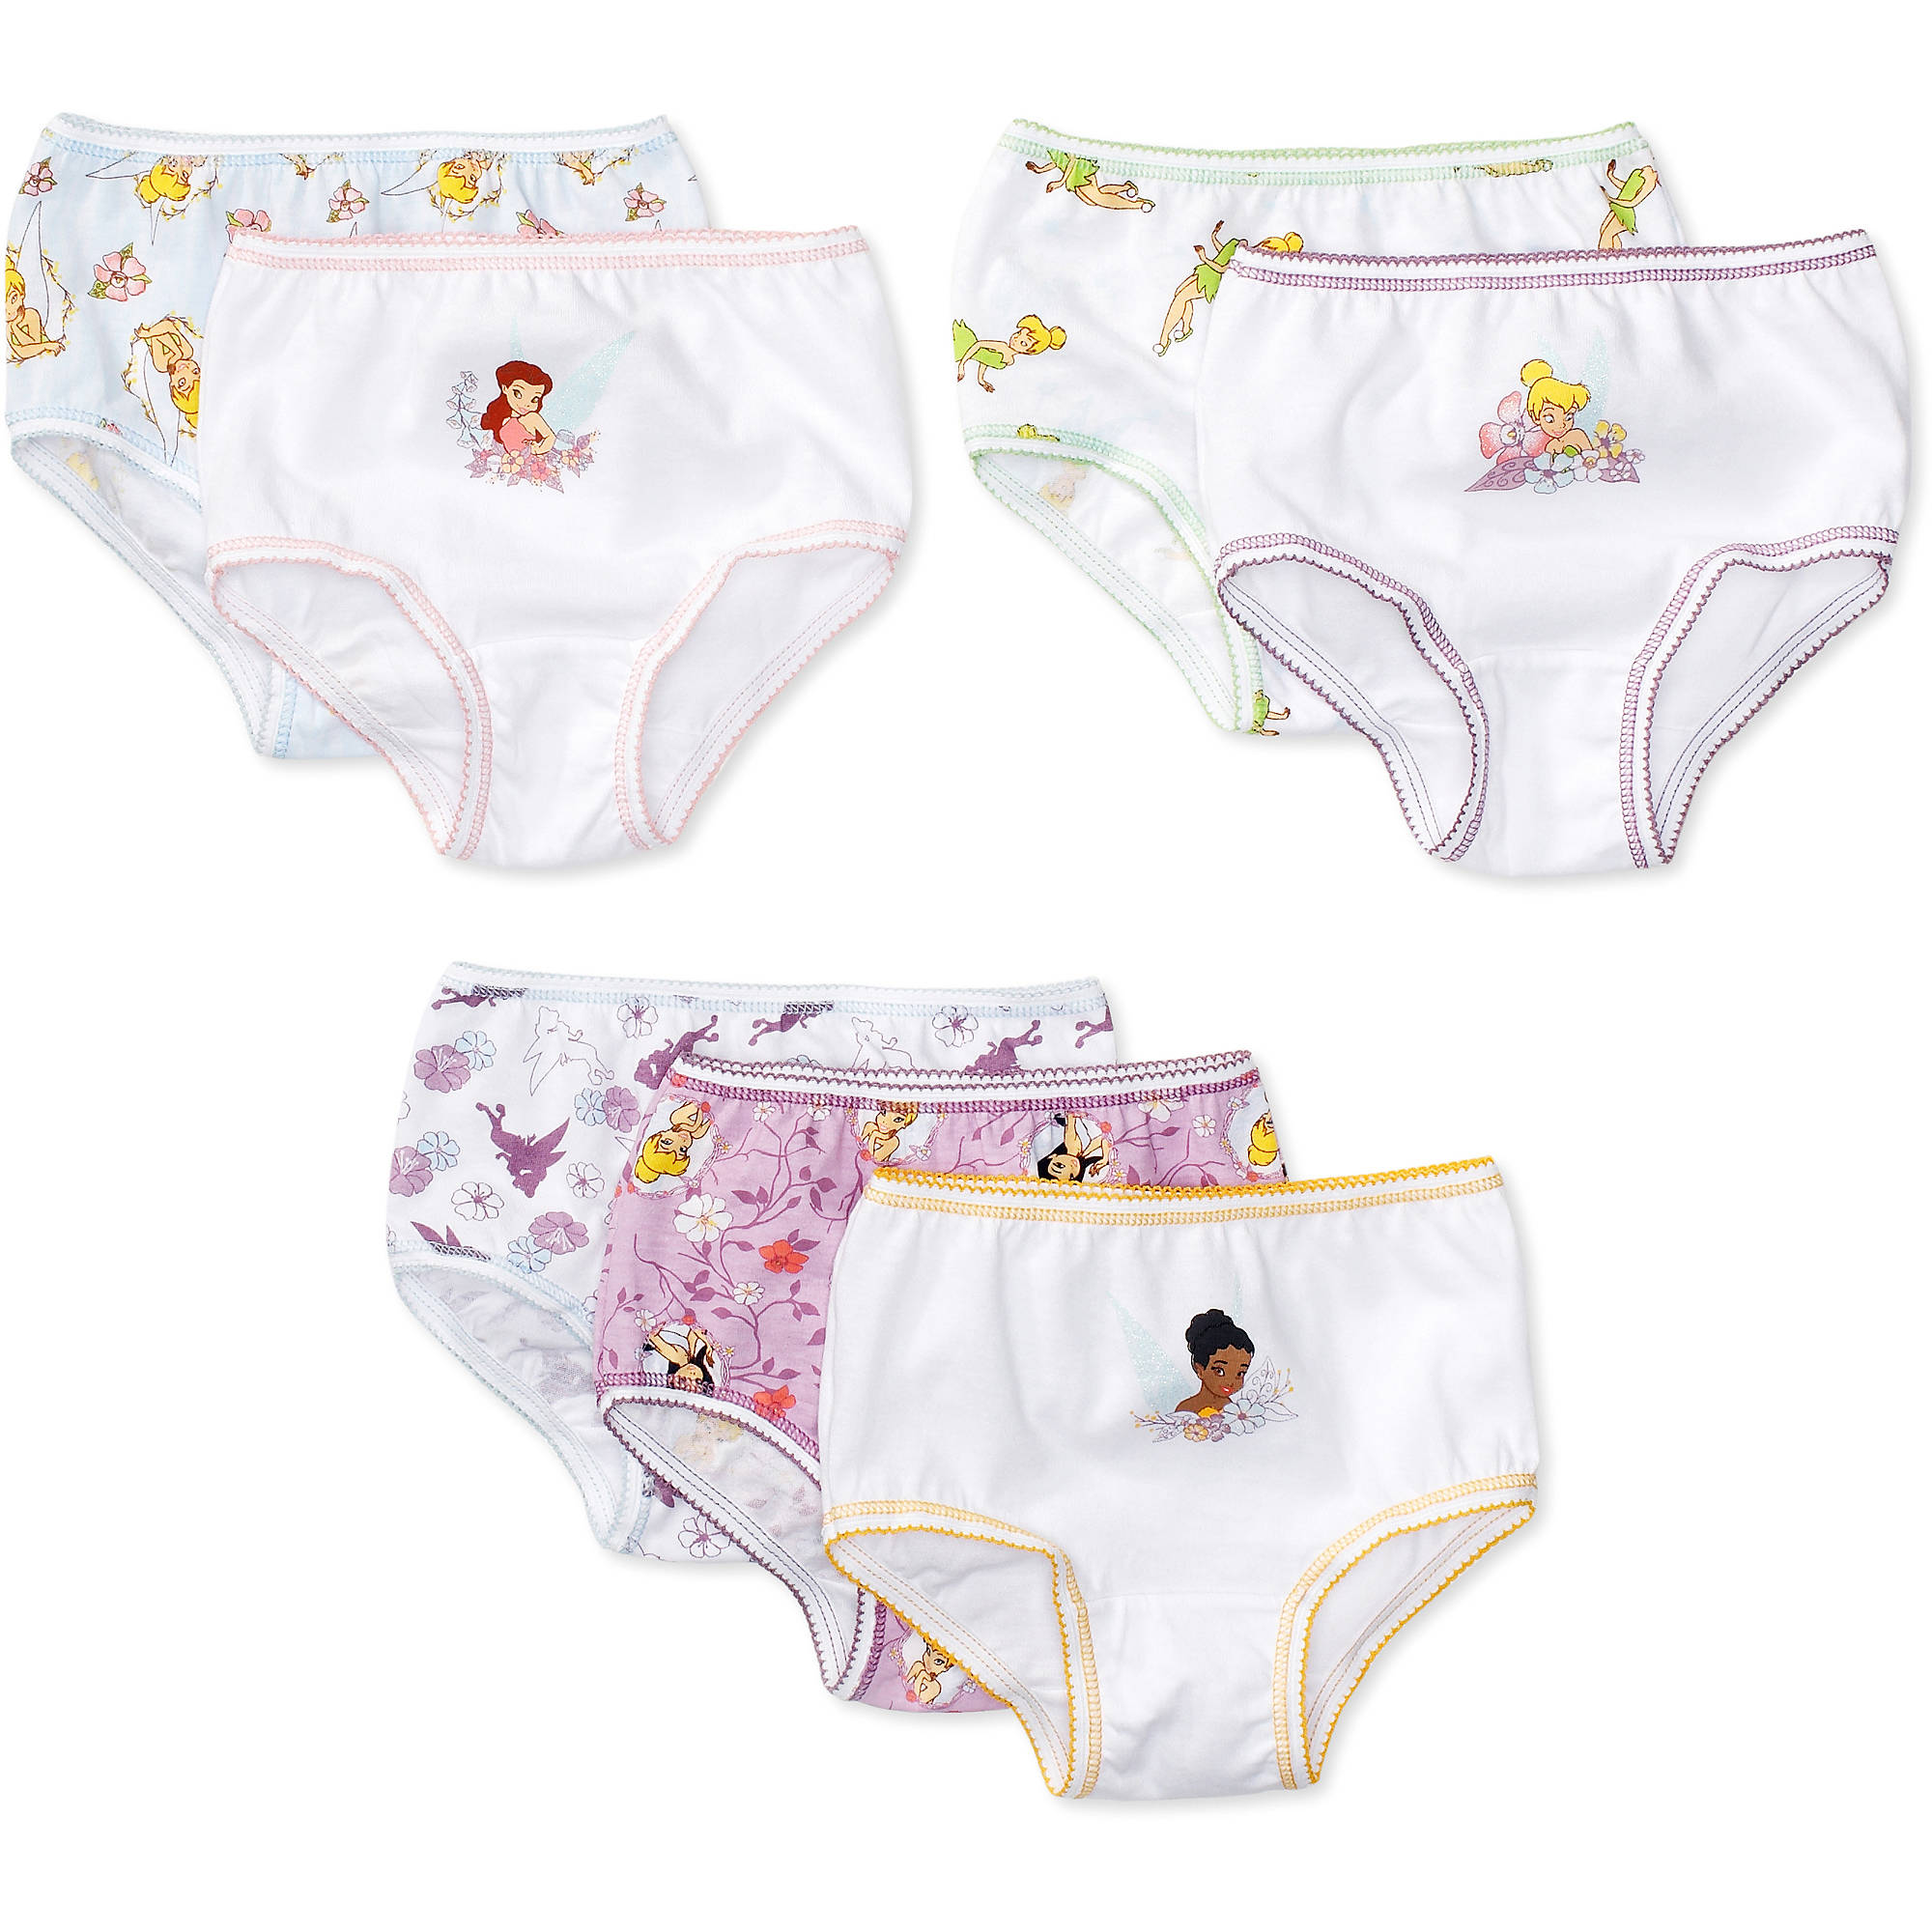 Disney Toddler Girls' Tinker Bell Underwear, 7-Pack